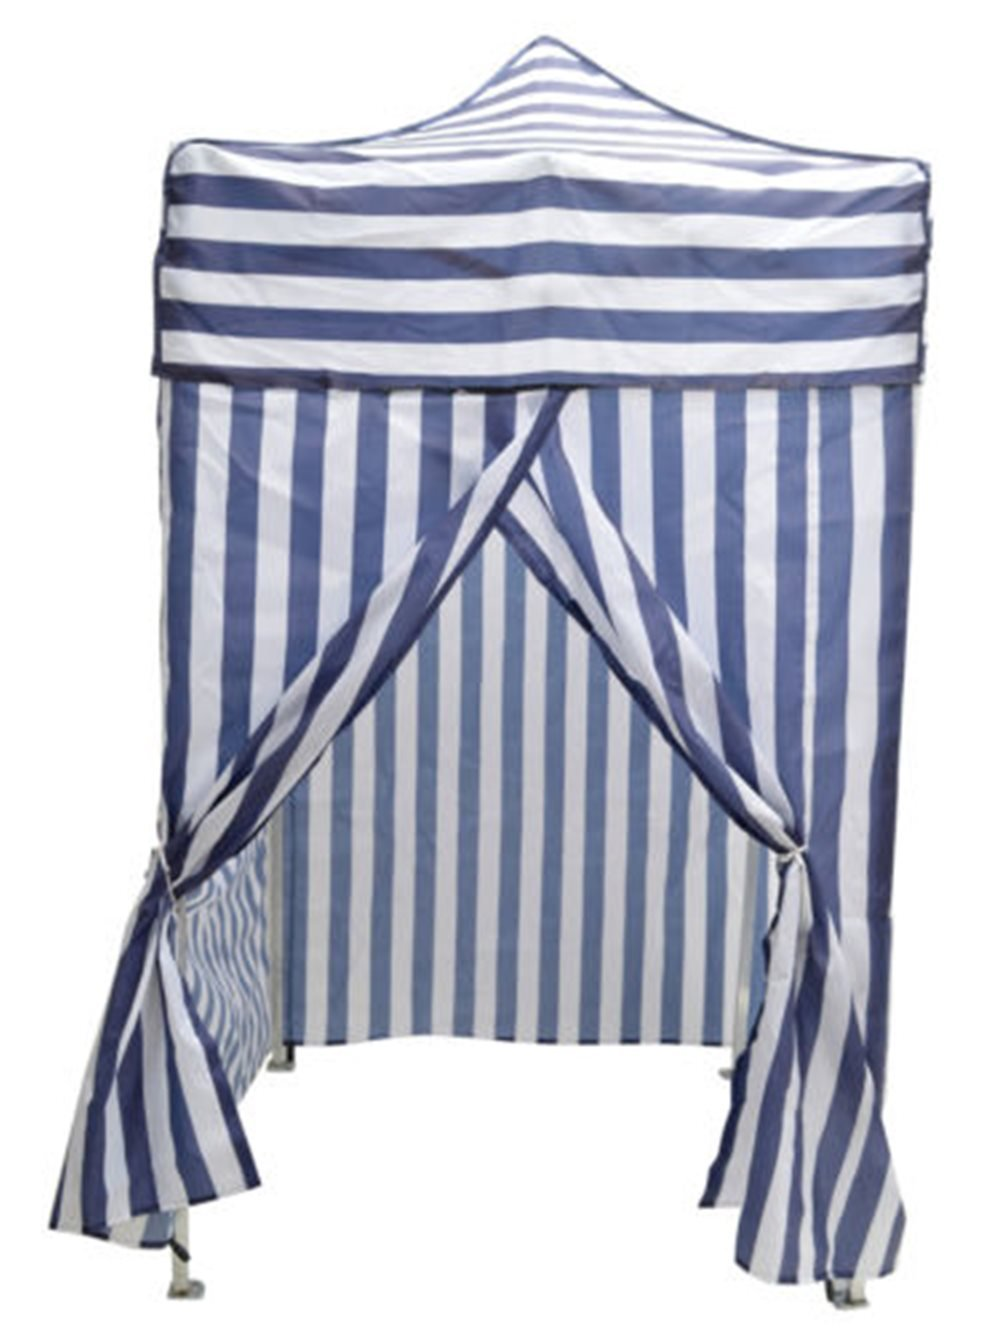 Tent Changing Room Camping Cabana Outdoor Pop Up Canopy Portable Blue Stripe by PTY-Shop-ForU (Image #2)